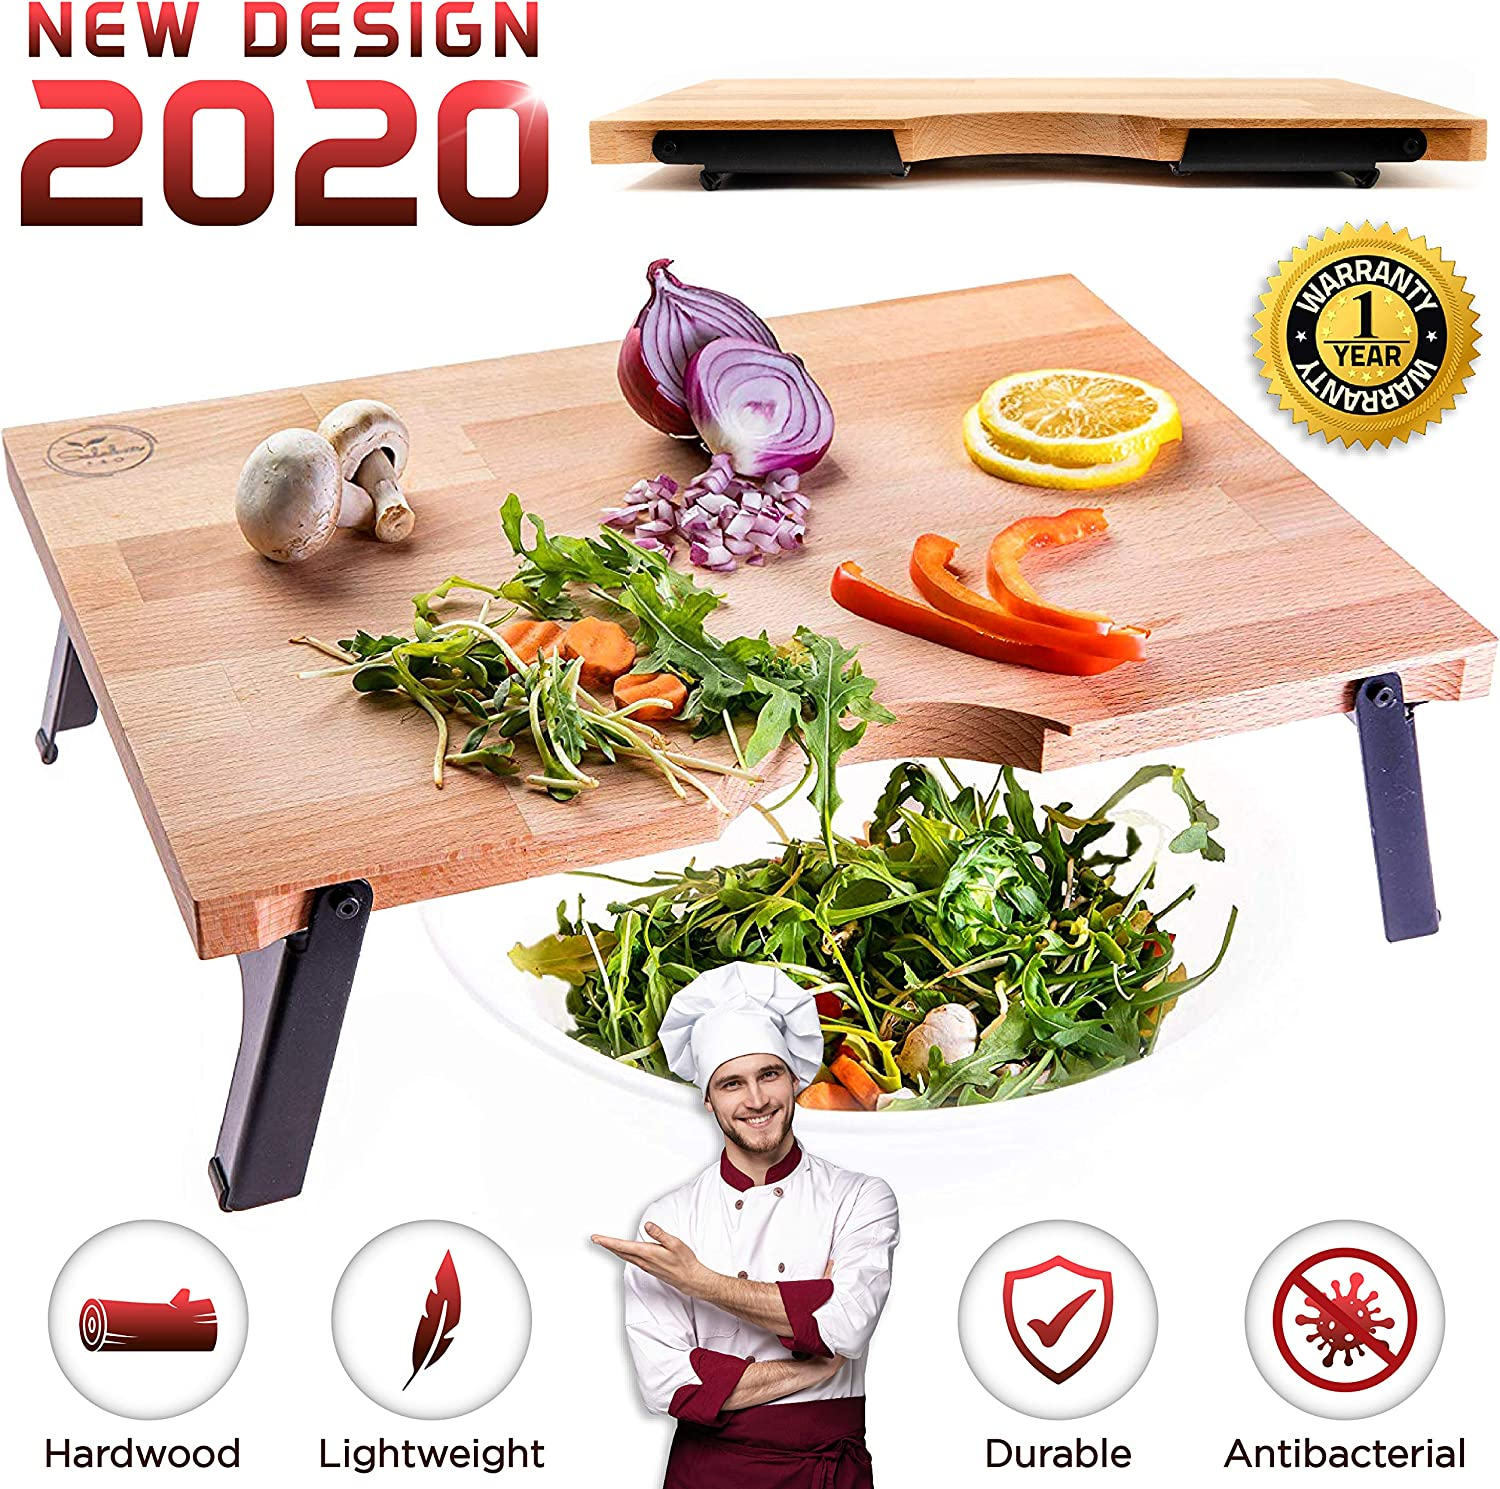 Salabar Raised Wood Cutting Board with Foldable Feet and Anti-Warp Bars, Pre-Oiled European Hardwood, Large Folding Wooden Chopping Board, Best Kitchen Gift, Chop into Bowl for No Mess Prepping